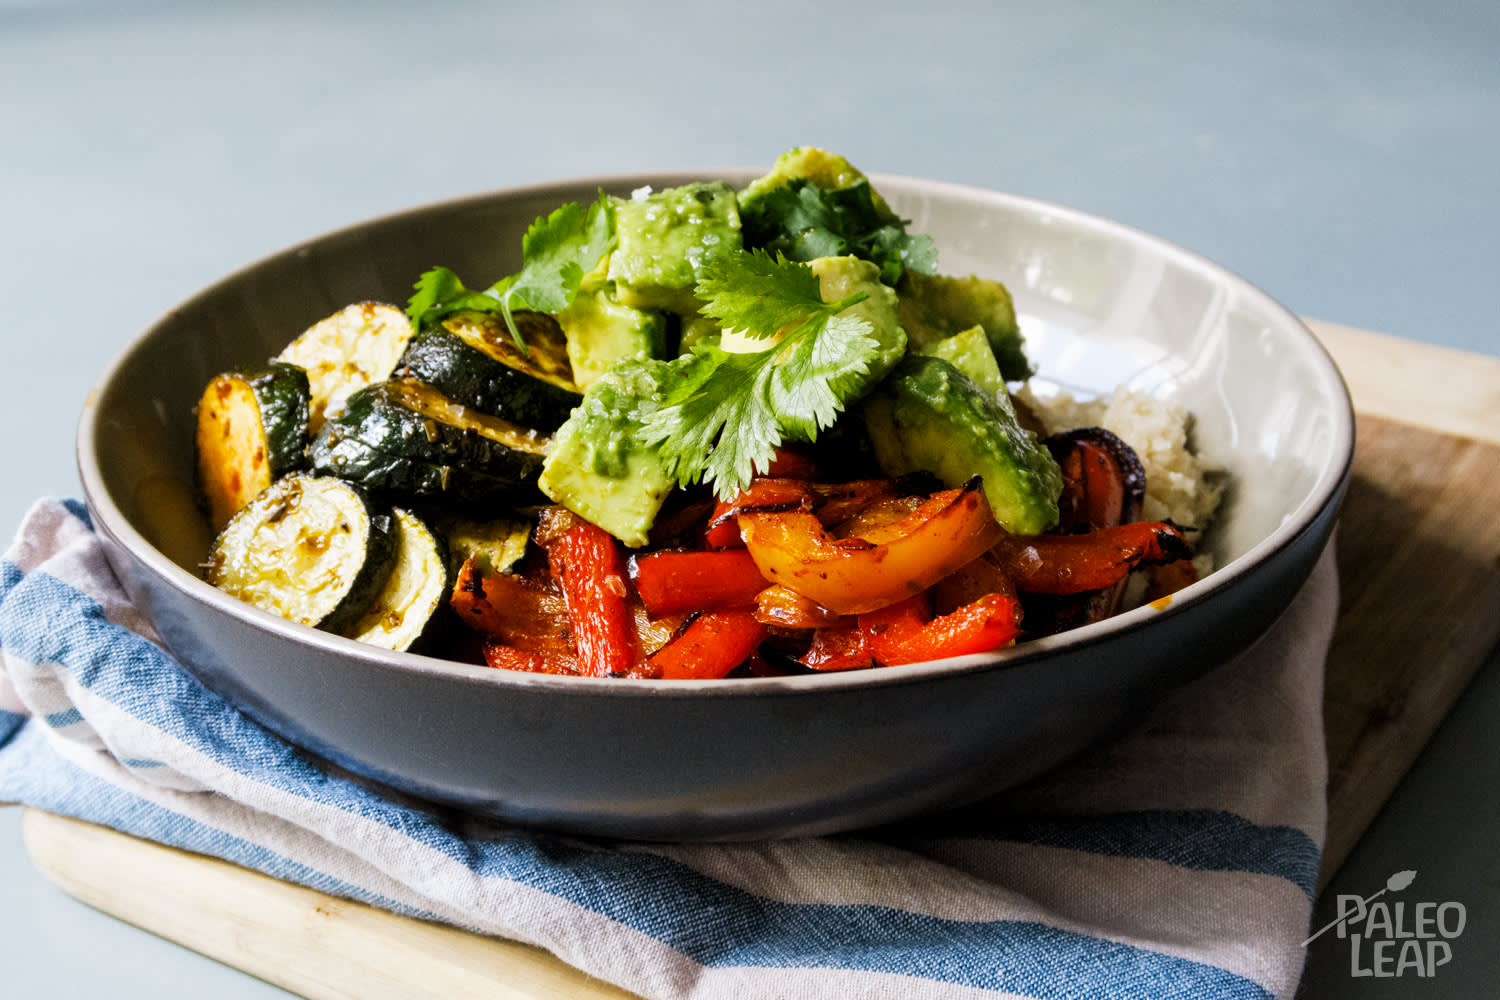 Paleo Vegetable Burrito Bowls